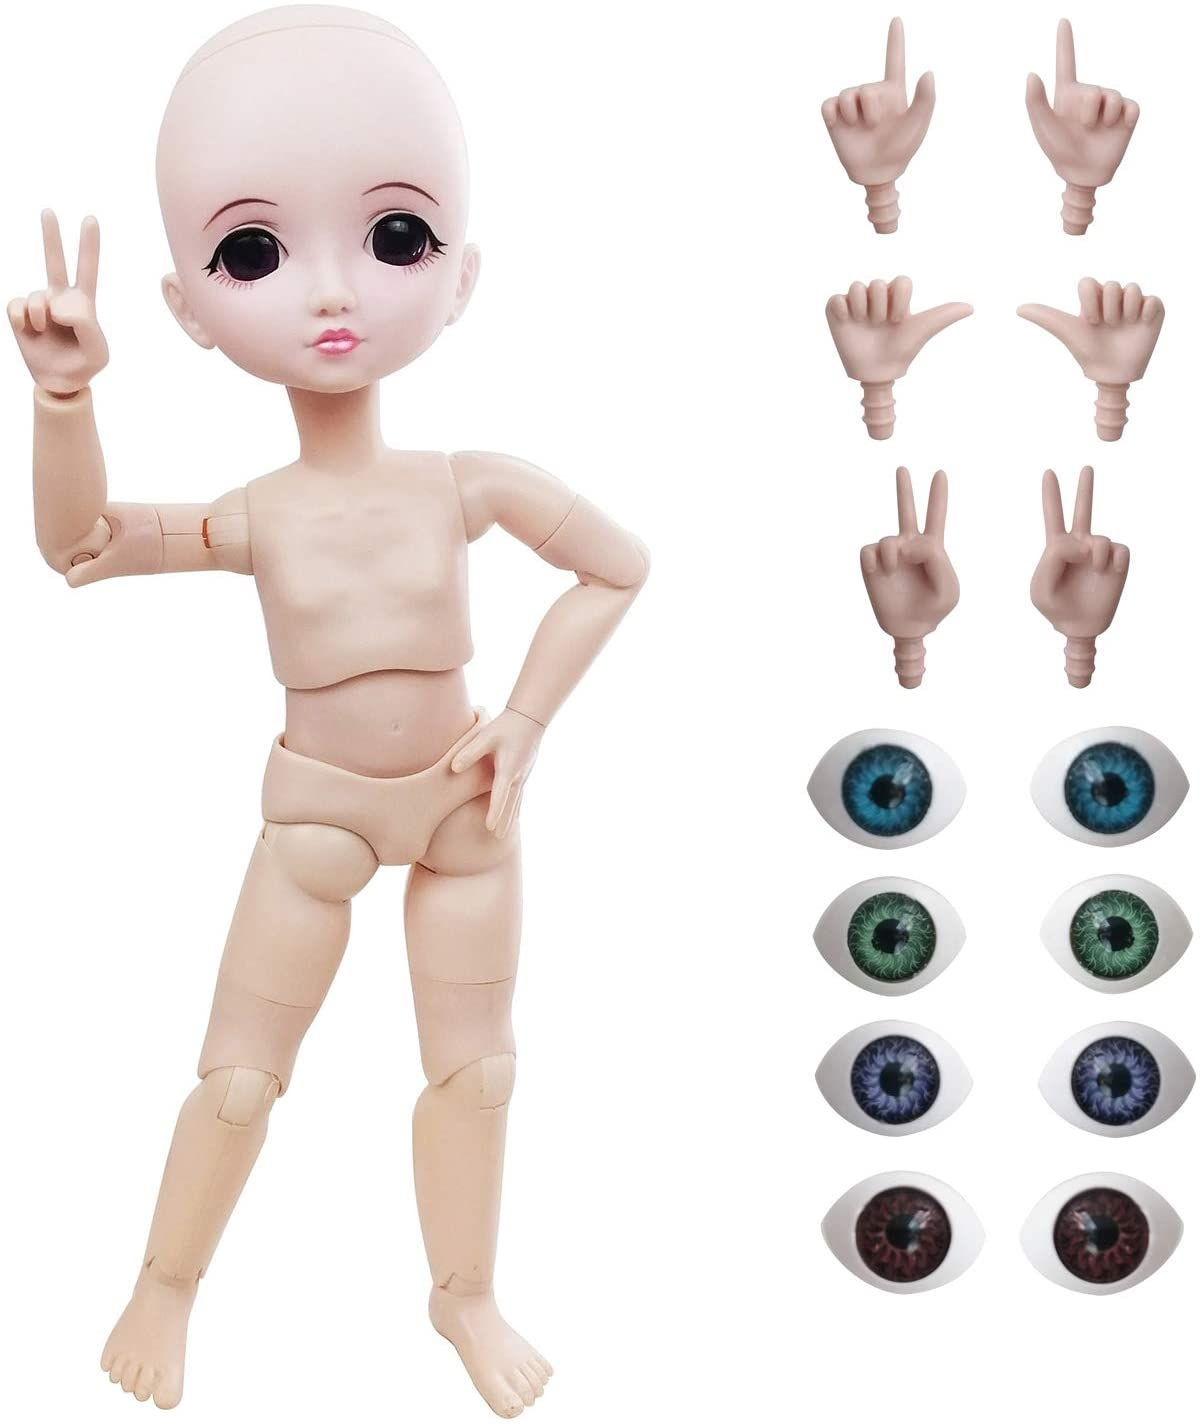 EVA BJD Customized 1/6 BJD Doll,29cm 11inch Ball Jointed Dolls +Basic Makeup + 5 Colors Eyes + Different Hands,Free to Change